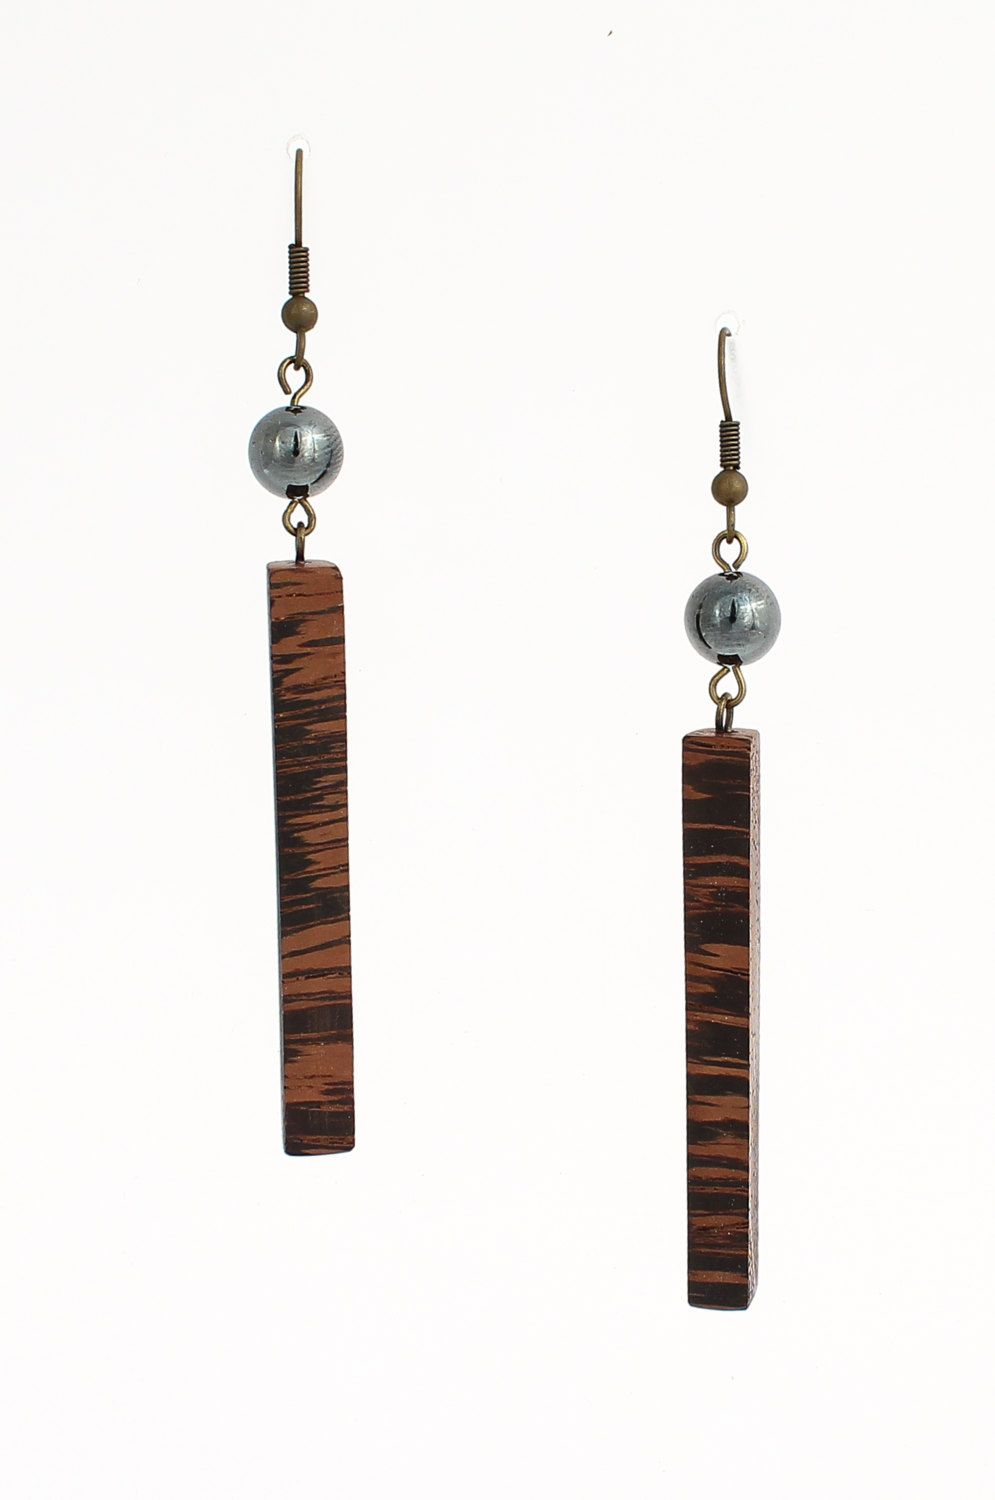 Long wooden earrings -  dangle wood earrings - exotic wood earrings urban earrings unique  earrings dramatic earrings bead earrings ancient earrings abstract art earring wood earrings hematite earrings long dangle earrings geometric earrings unique natural wood wooden jewelry dailyetsysales 25.00 USD #goriani